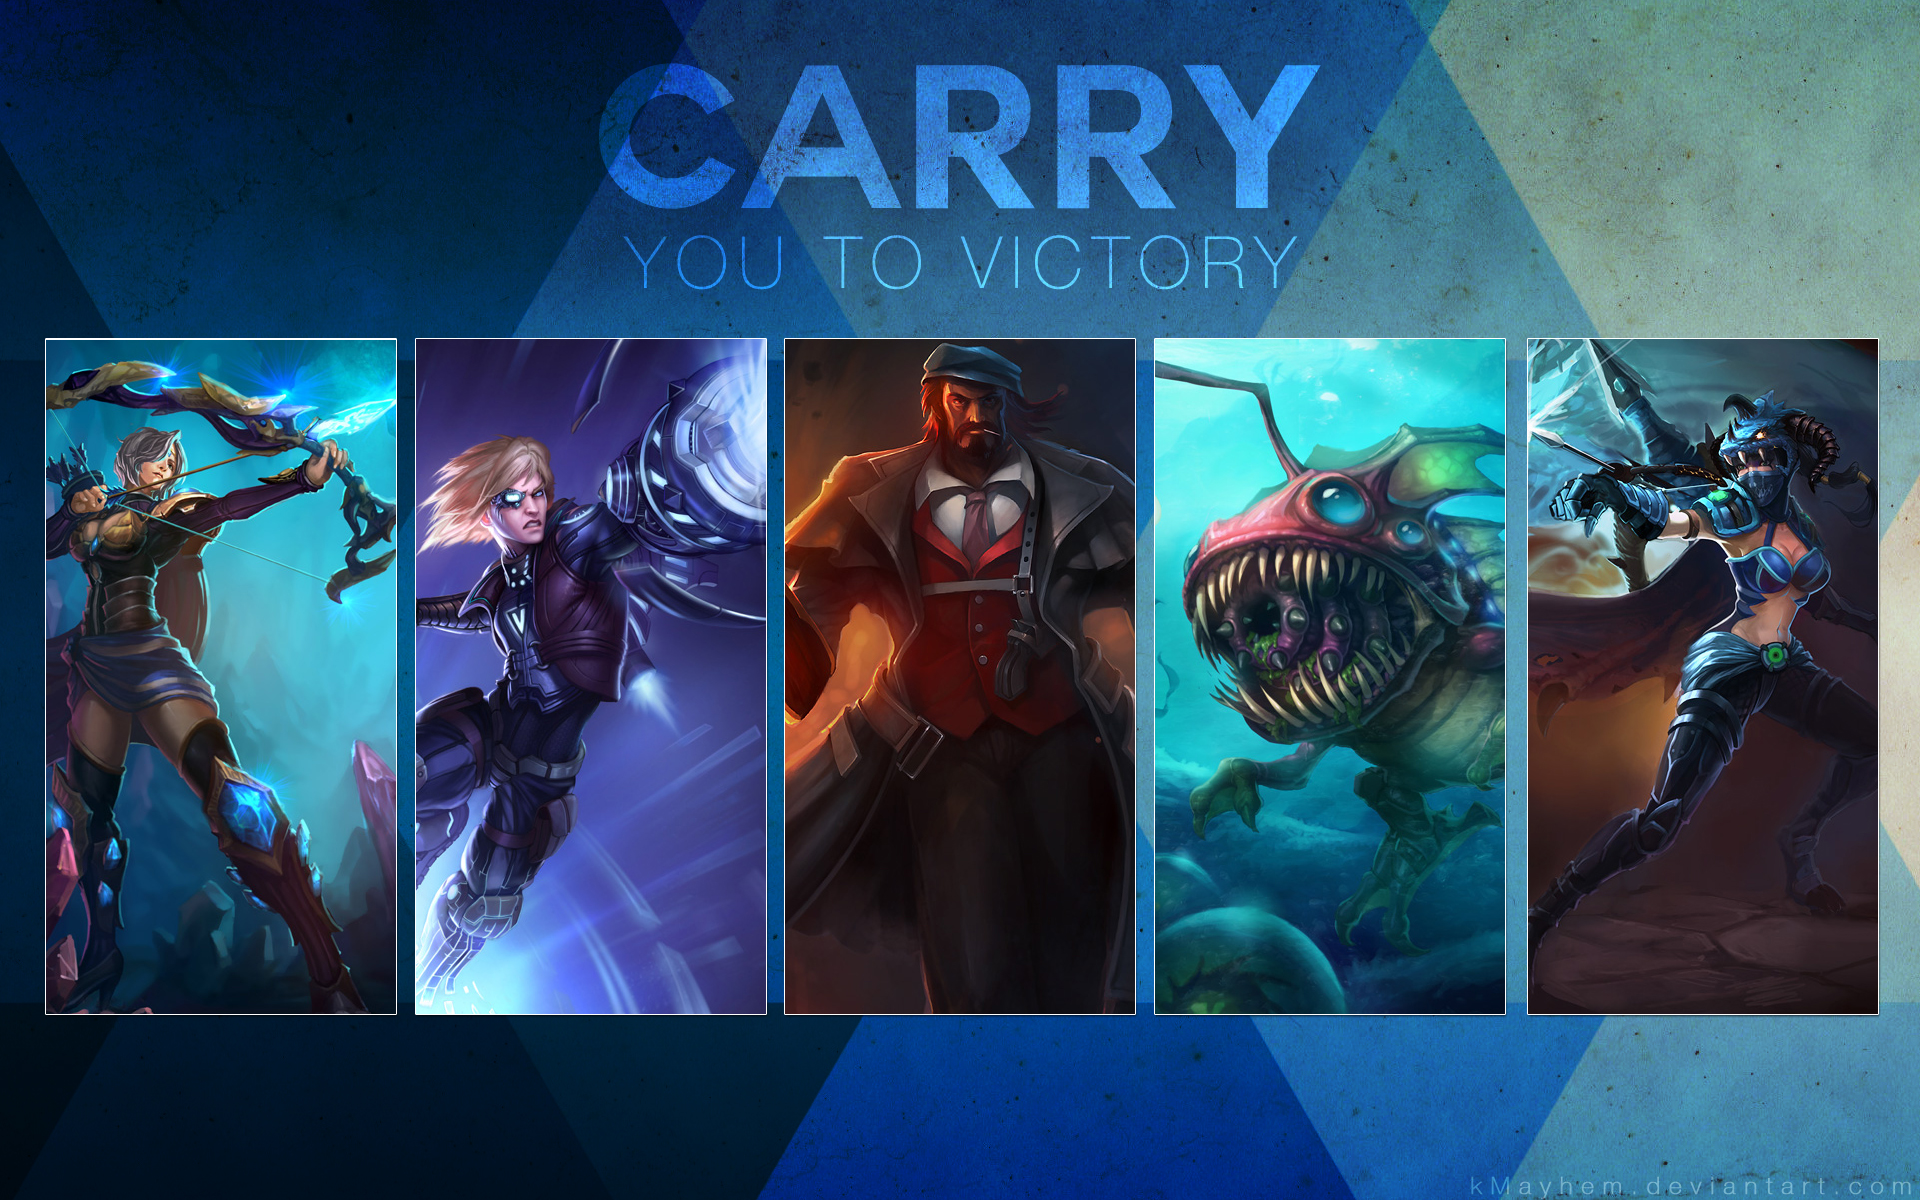 Carry You to Victory by kMayhem